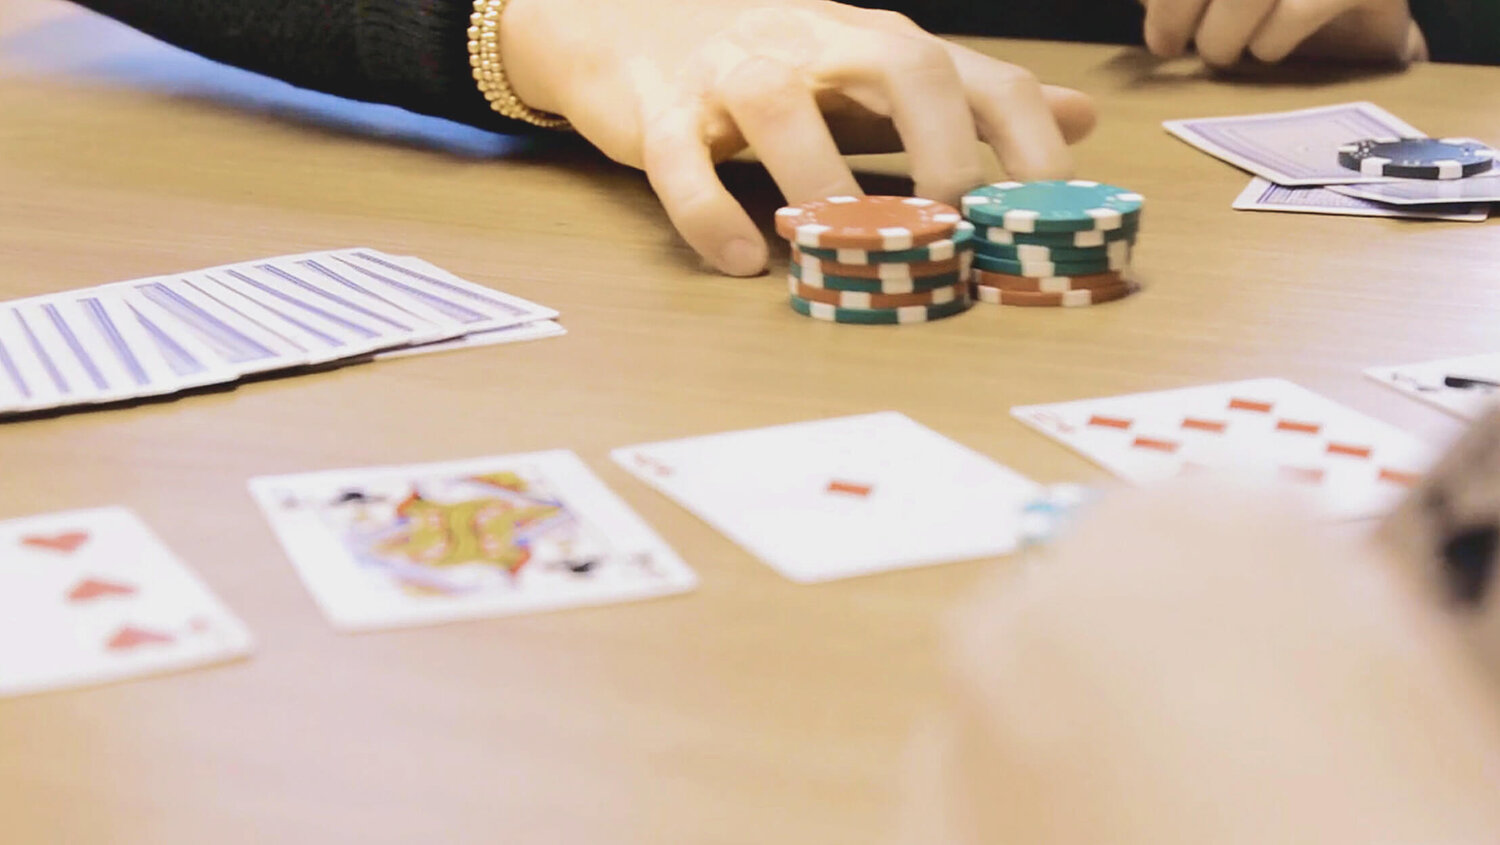 """Image for post: """"It's Not Personal, It's Just Business"""": Maria Konnikova on the Power of Poker for Women"""